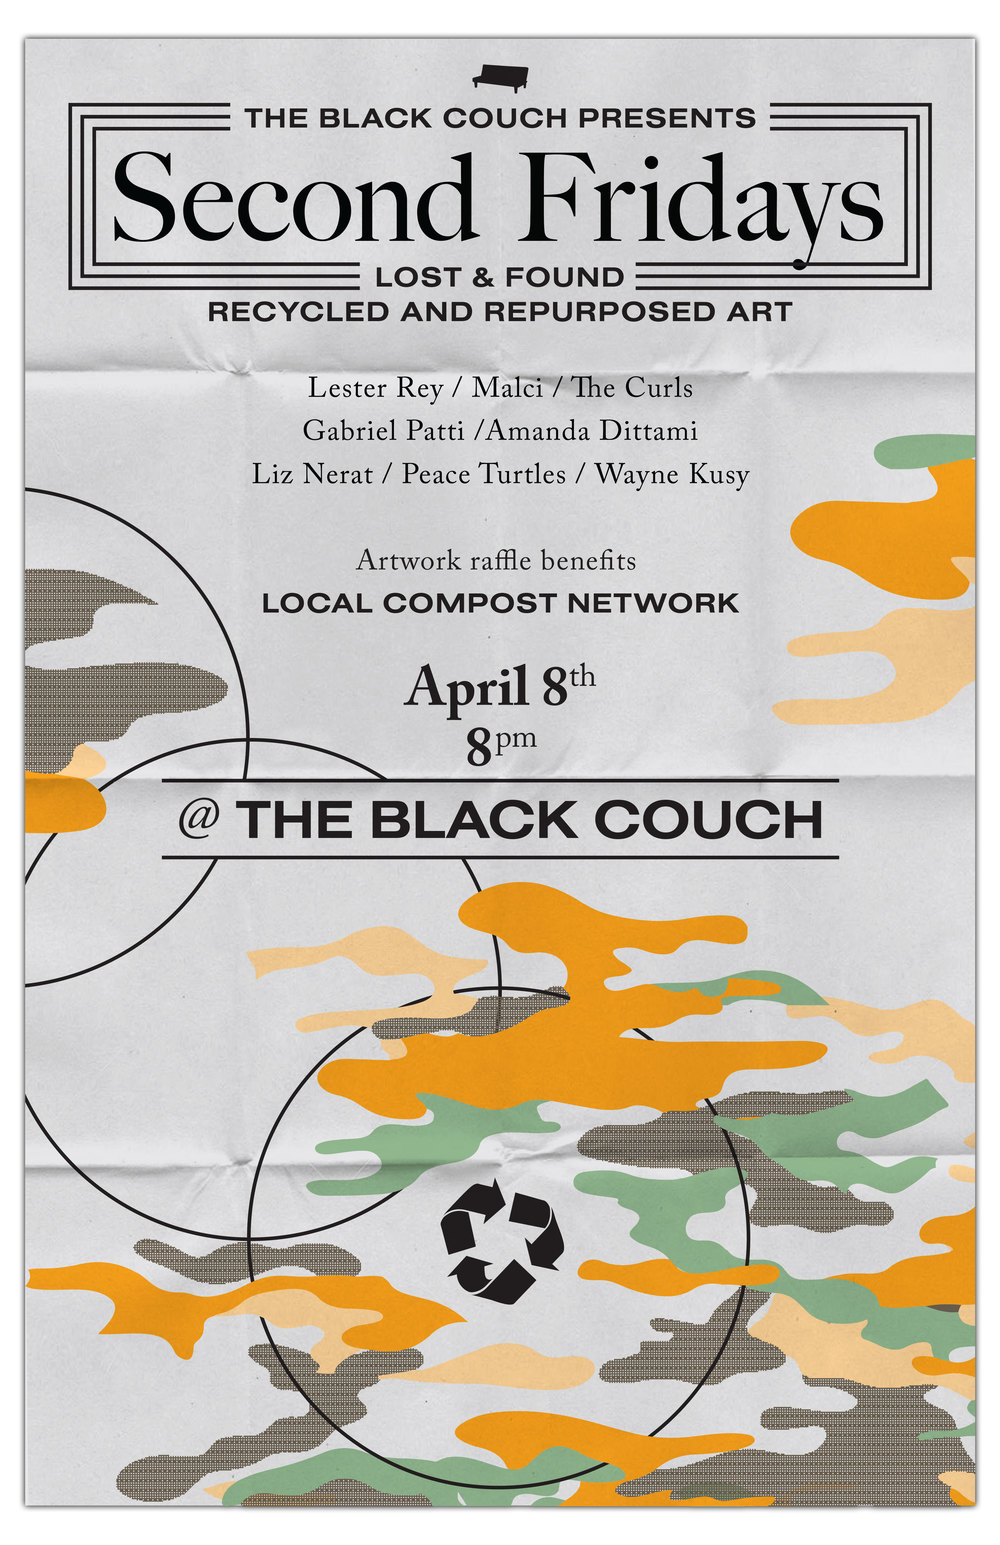 Second Fridays @ The Black Couch: Lost & Found